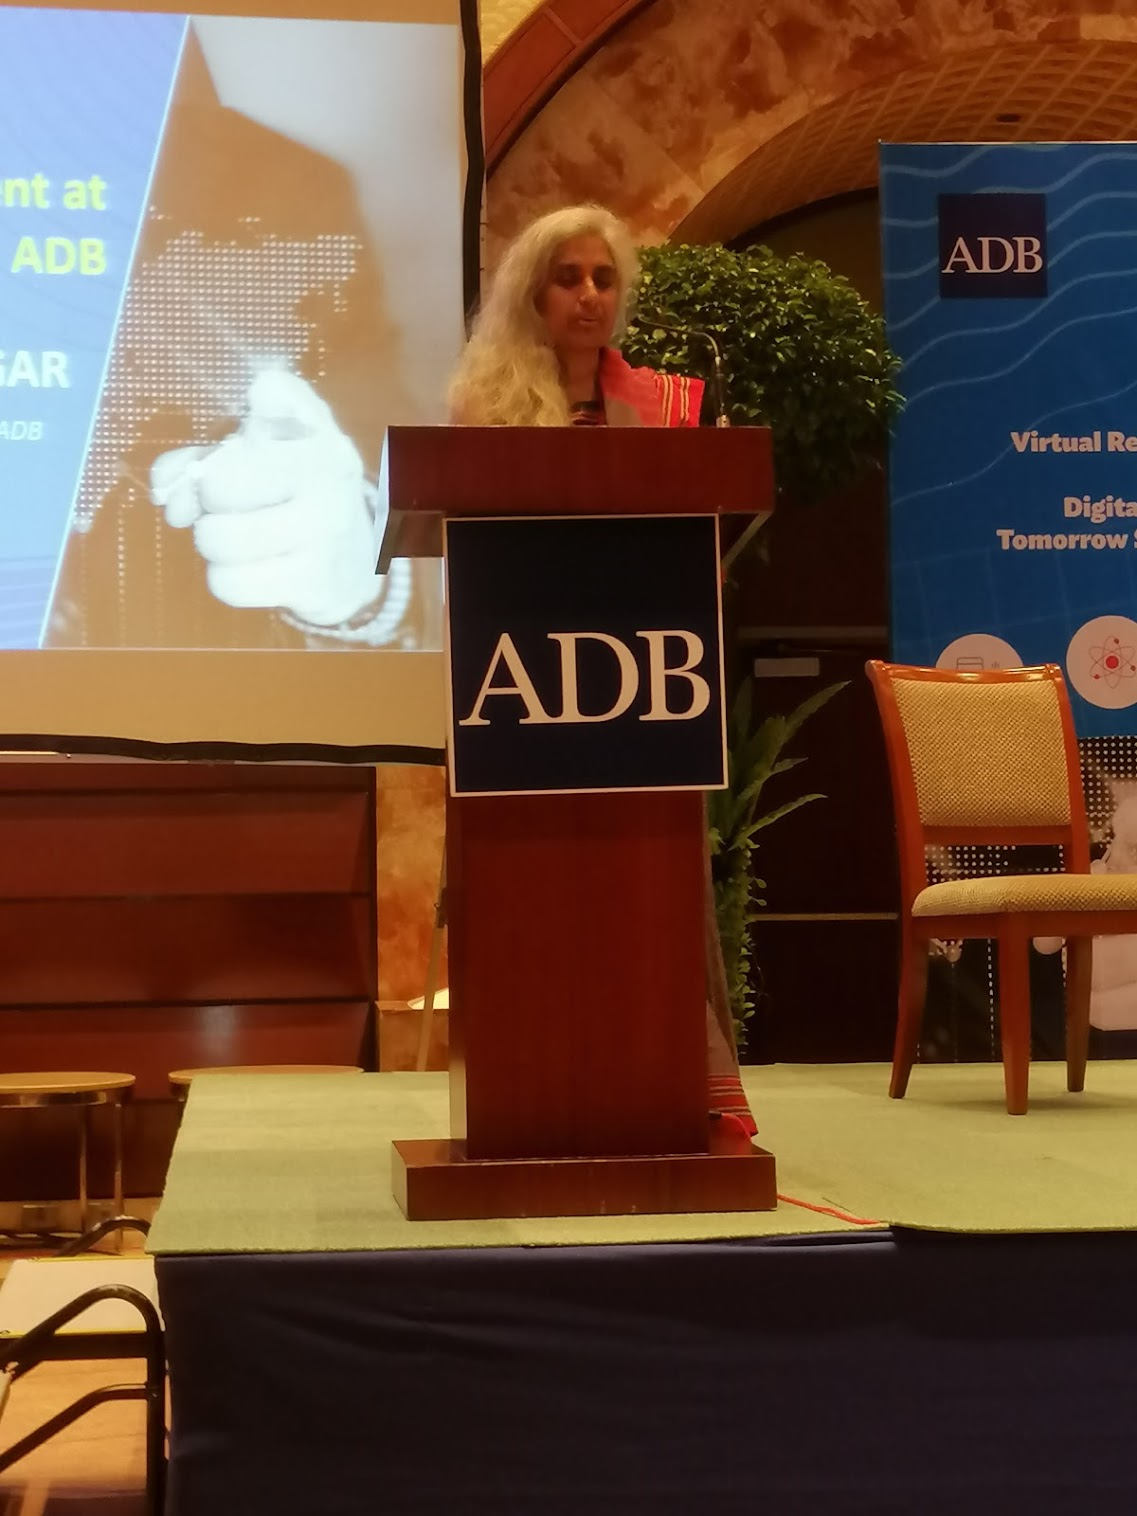 3:55 p.m. - The next Future Stories from ADB brings Kavita Iyengar, SARD, to the floor to talk about the knowledge management action plan.